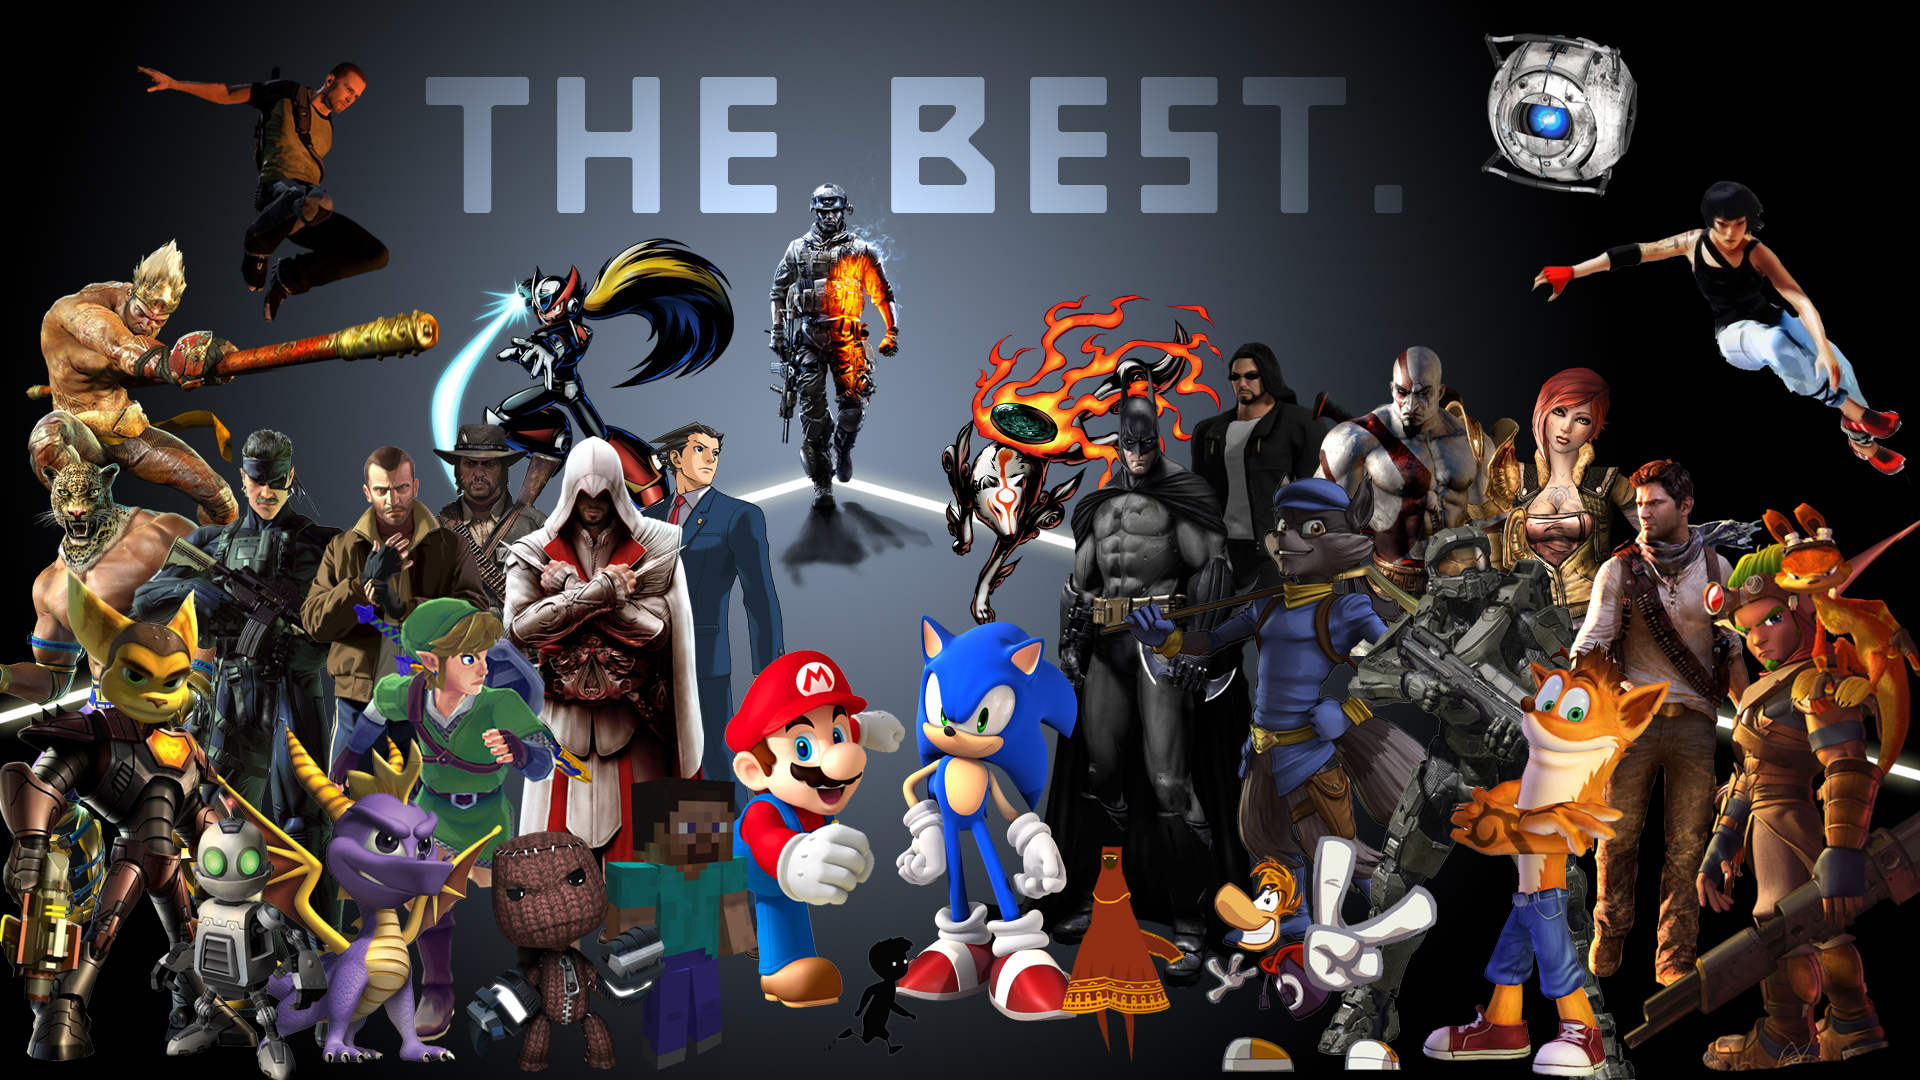 latest-amazing-video-game-character-collage-youtube-hd-wallpaper-cool-collage-wallpaper-[1]